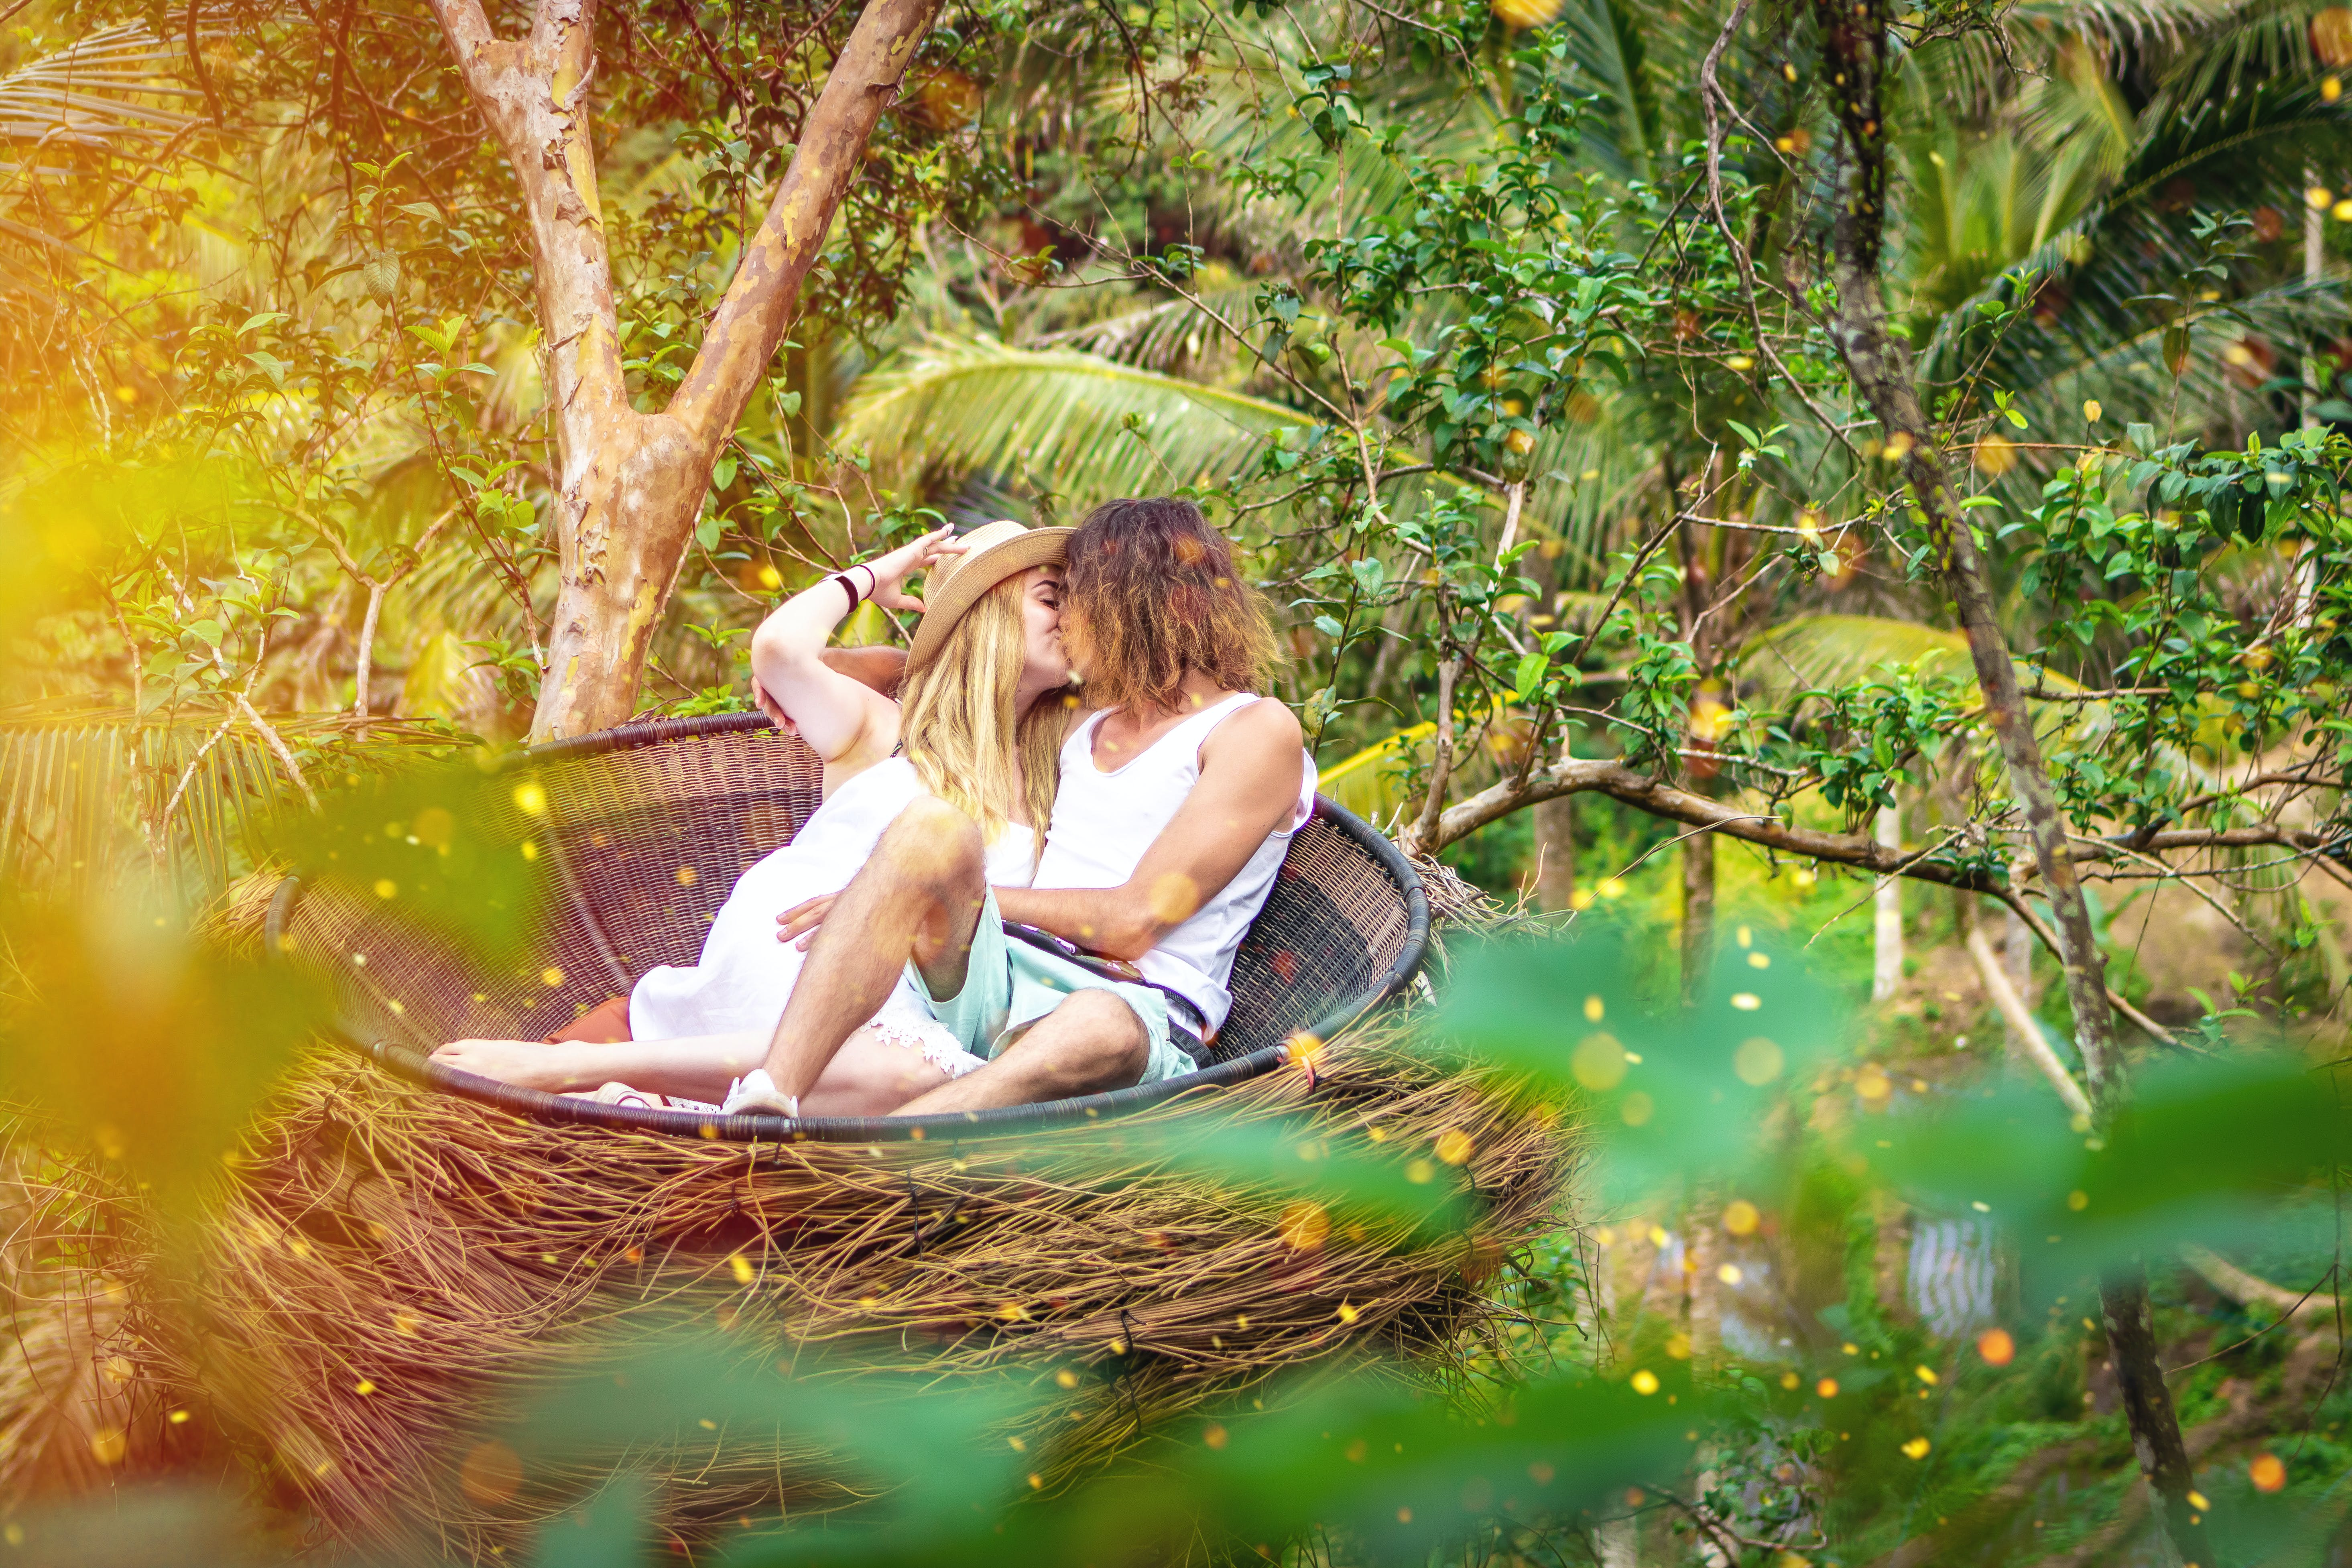 Man and Woman Kissing While Sitting in Round Brown Nest